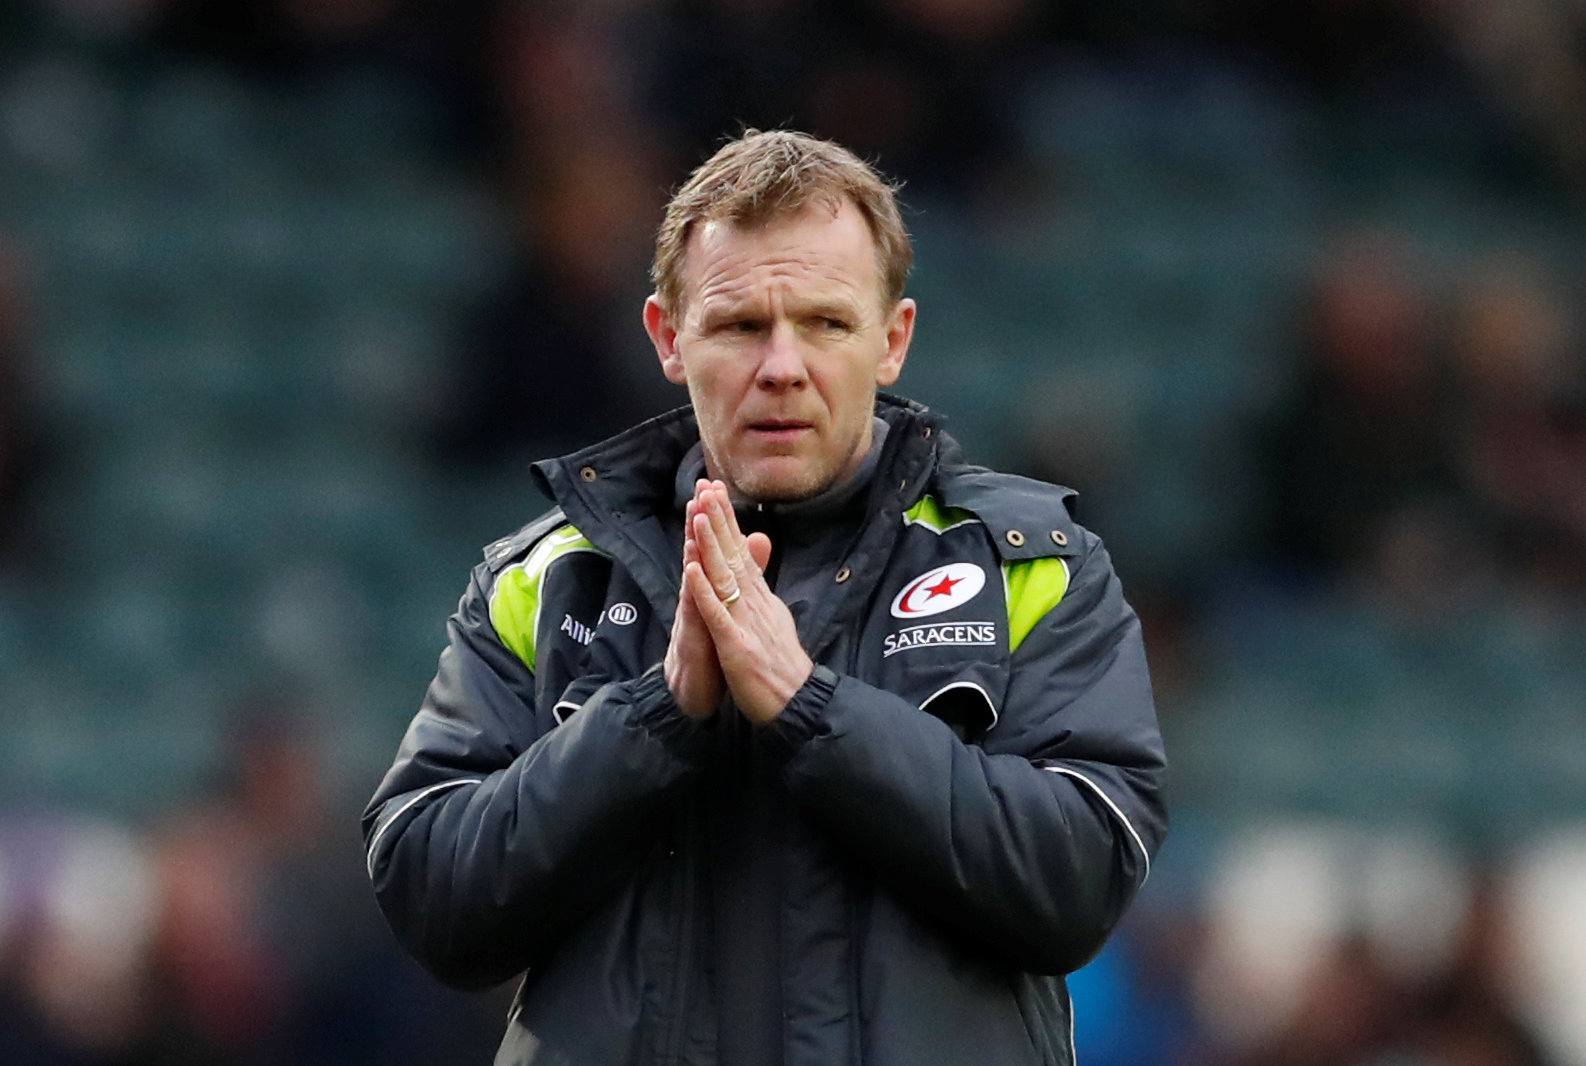 'We're a good club and a good side and hopefully we can bounce back from this': Mark McCall. Picture: Action Images